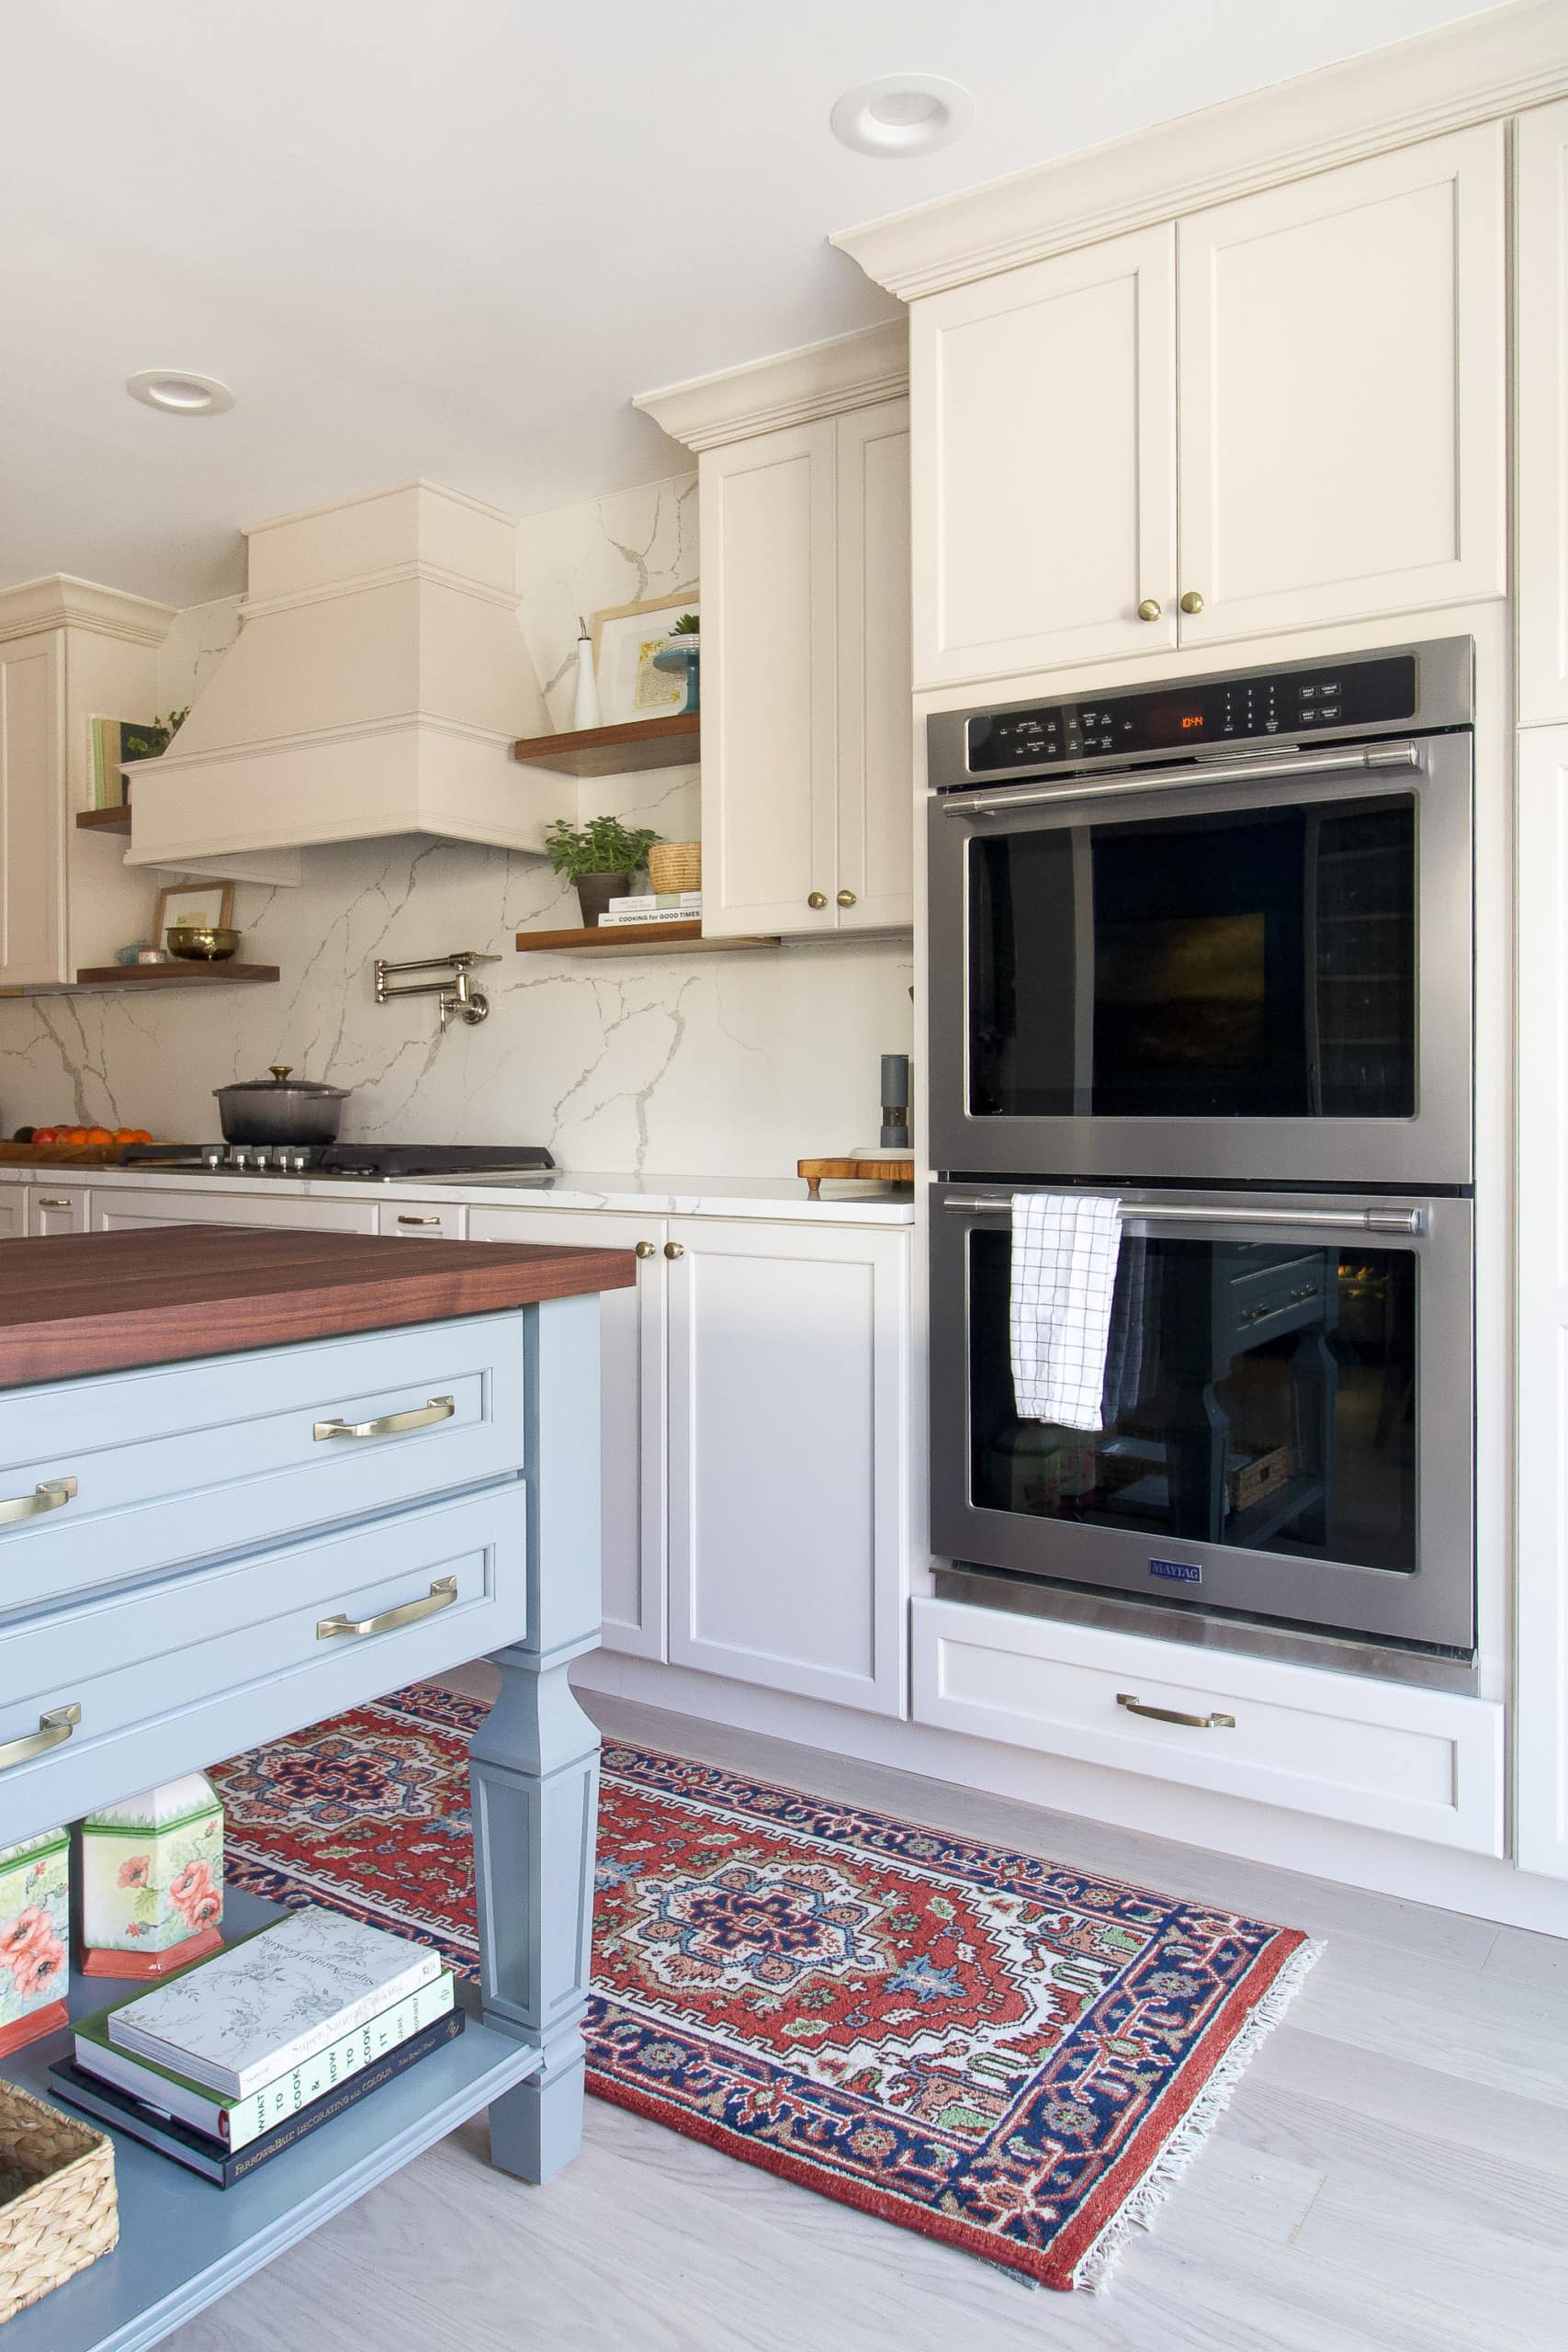 Choosing Kitchen Appliances From Maytag The Diy Playbook